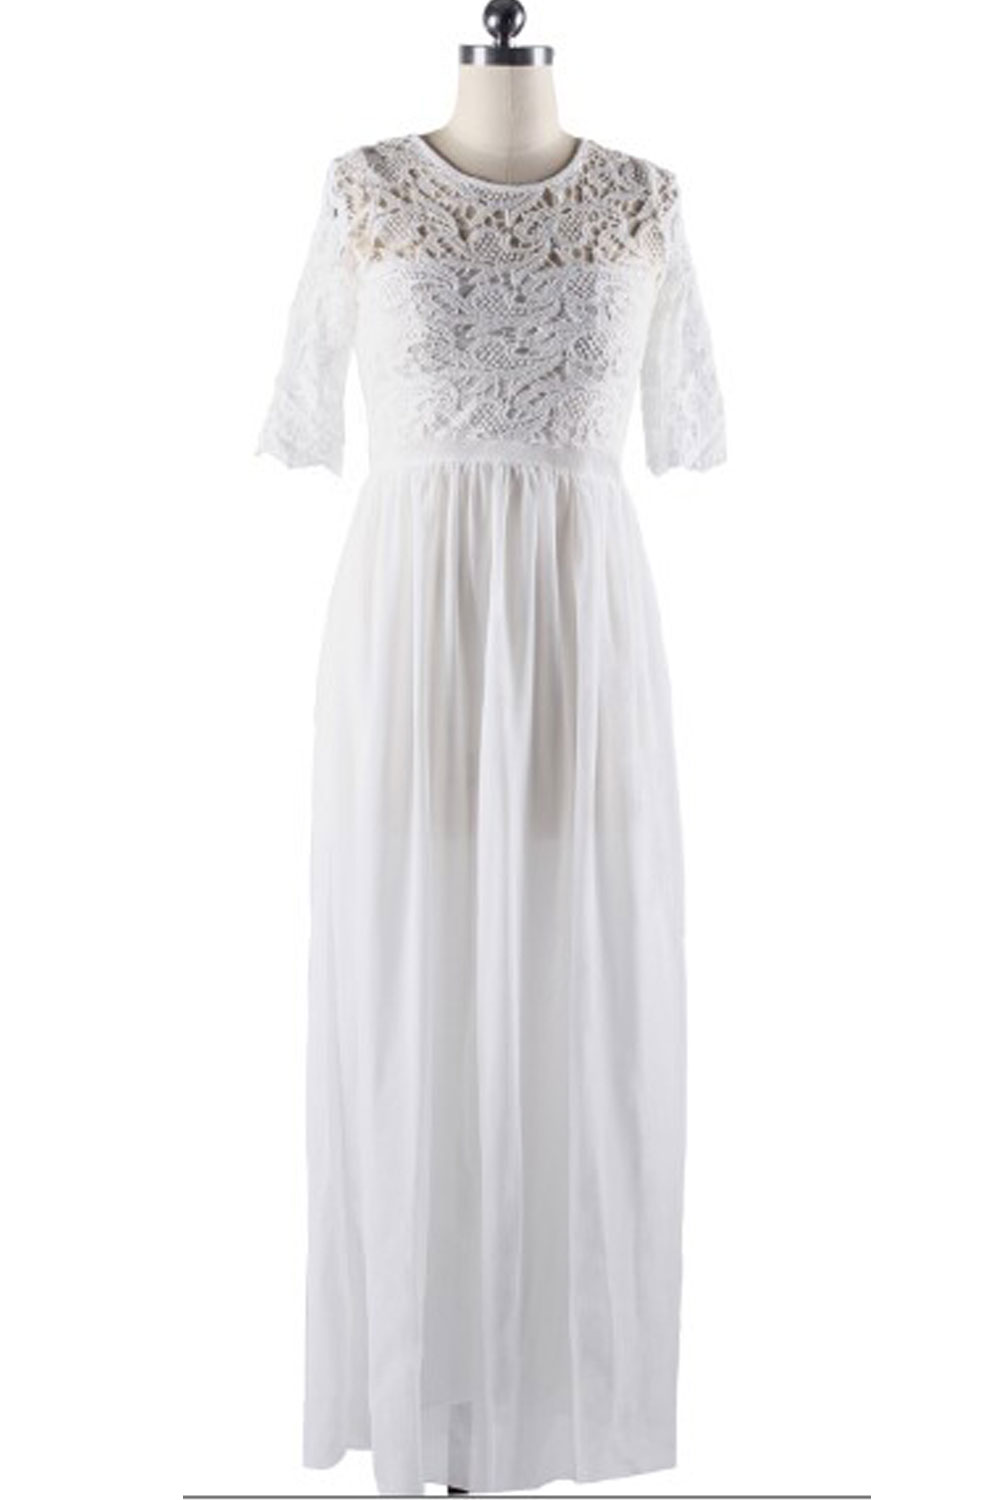 Unomatch women winter party dresses lace designed long for Winter wedding party dresses